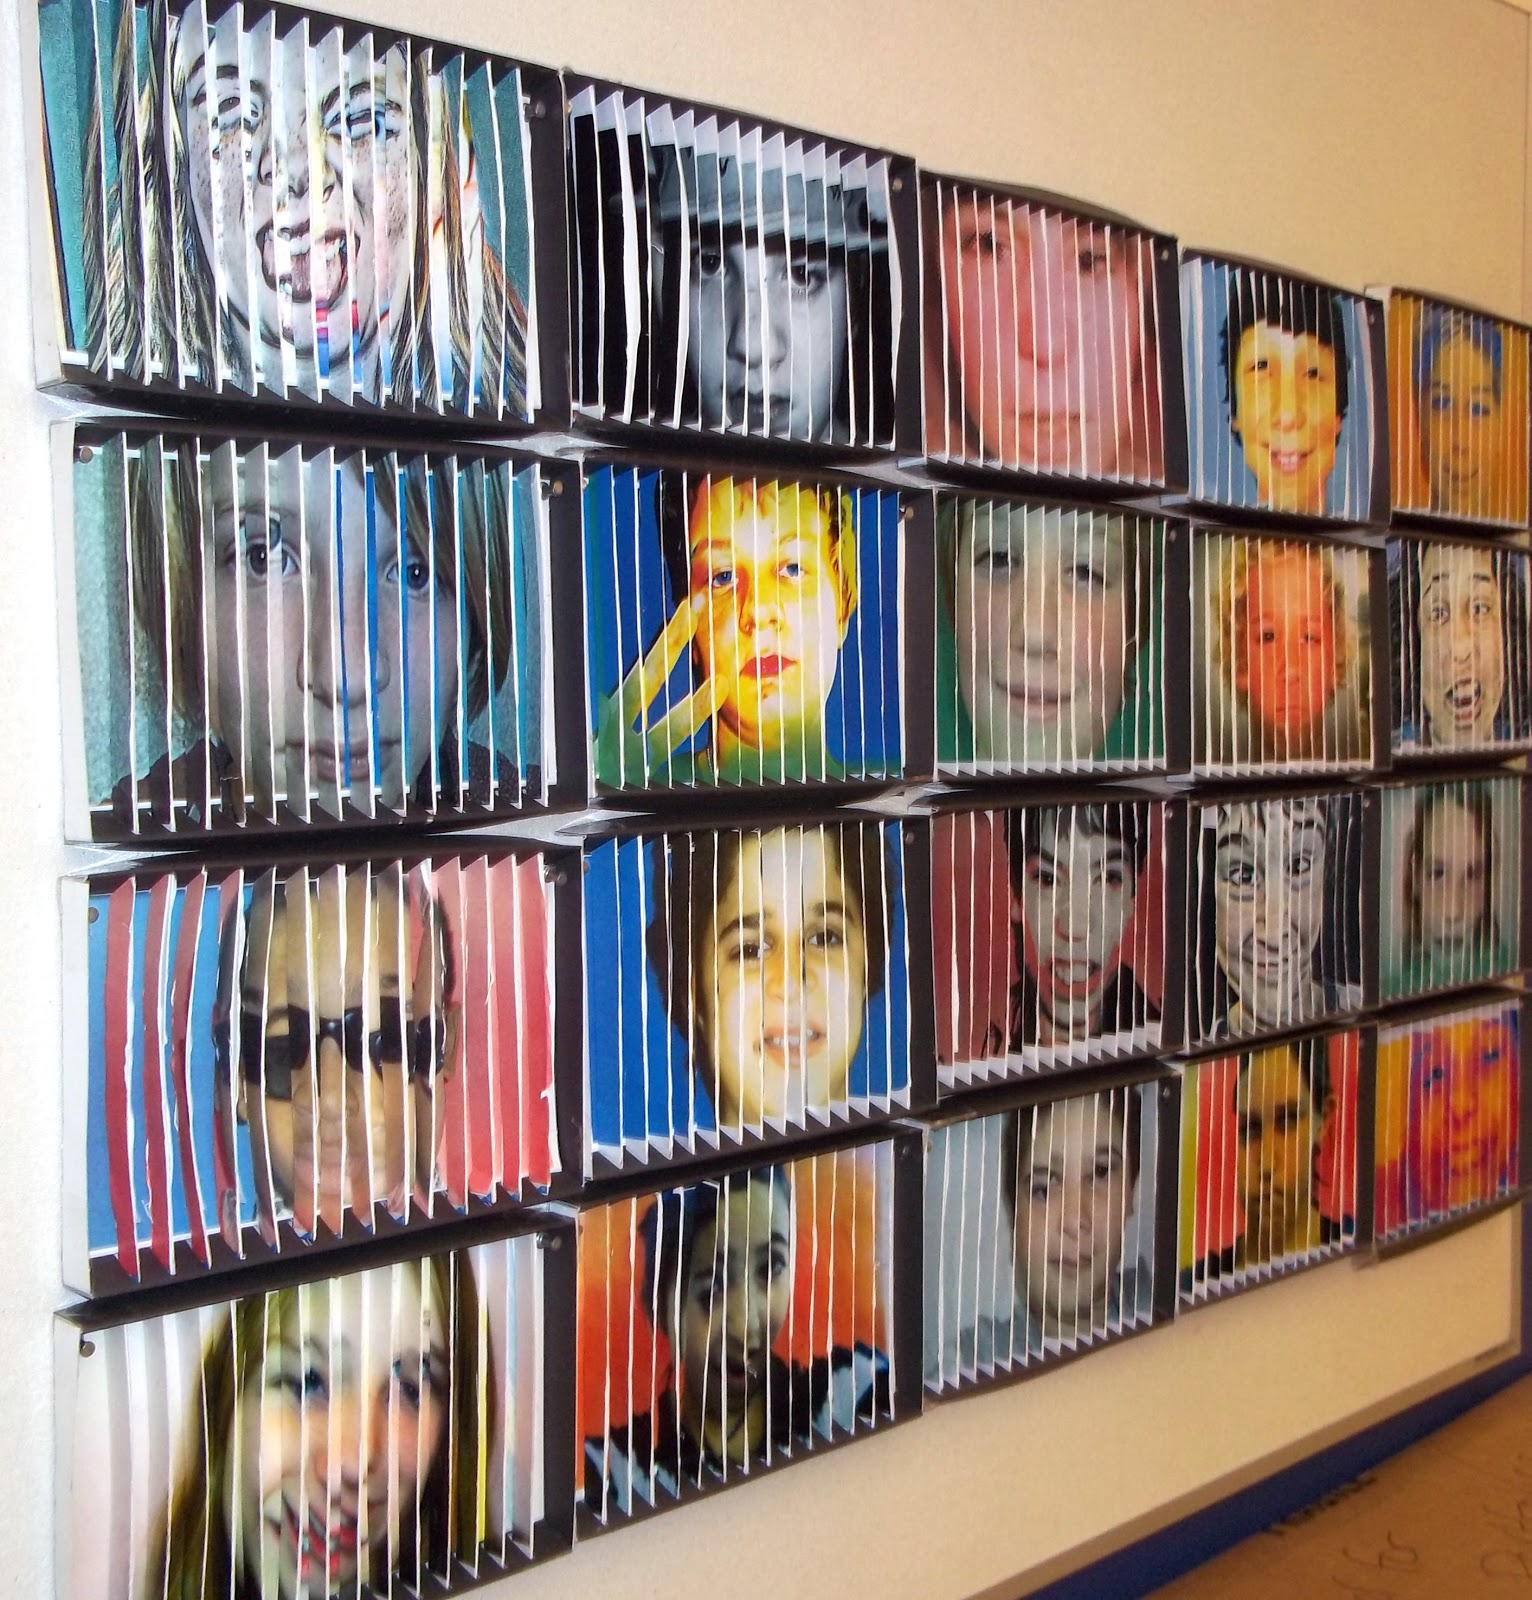 465 best images about Art Projects for Middle School on ...  |Middle School Art Lesson Ideas